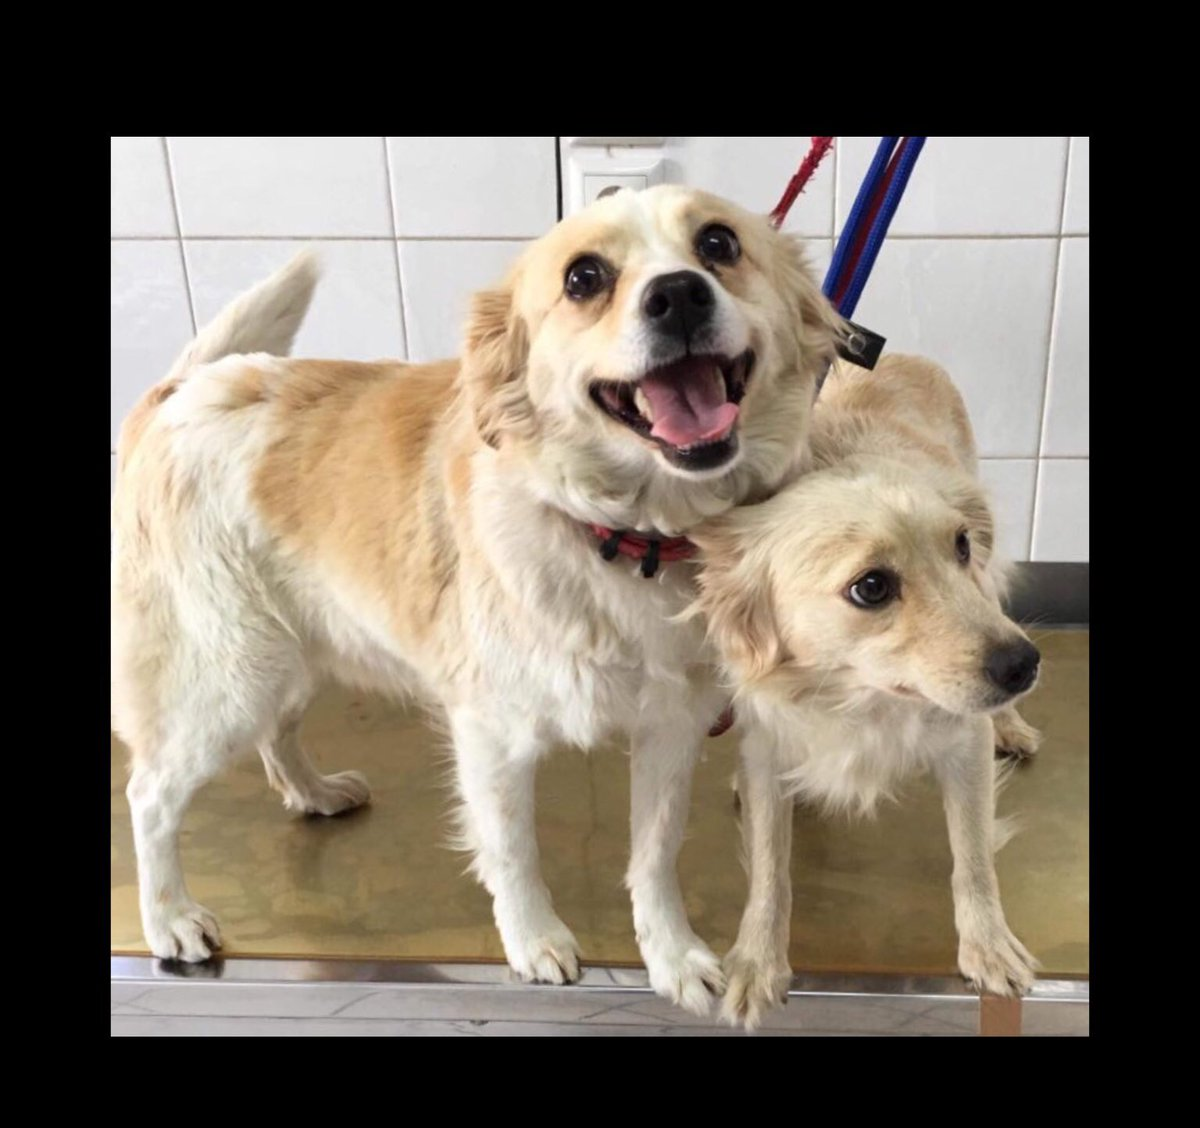 Beautiful, loving Lila & Kelly-with their puppies- were dumped like rubbish at the side of a road in Zante. We'd be #grateful for your help to find them a home with people who deserve them in #uk #Germany #NL💕  #AdoptDontBuy #rescuedogs #alldogsmatter #dogsarelove #AdoptMe #Dog